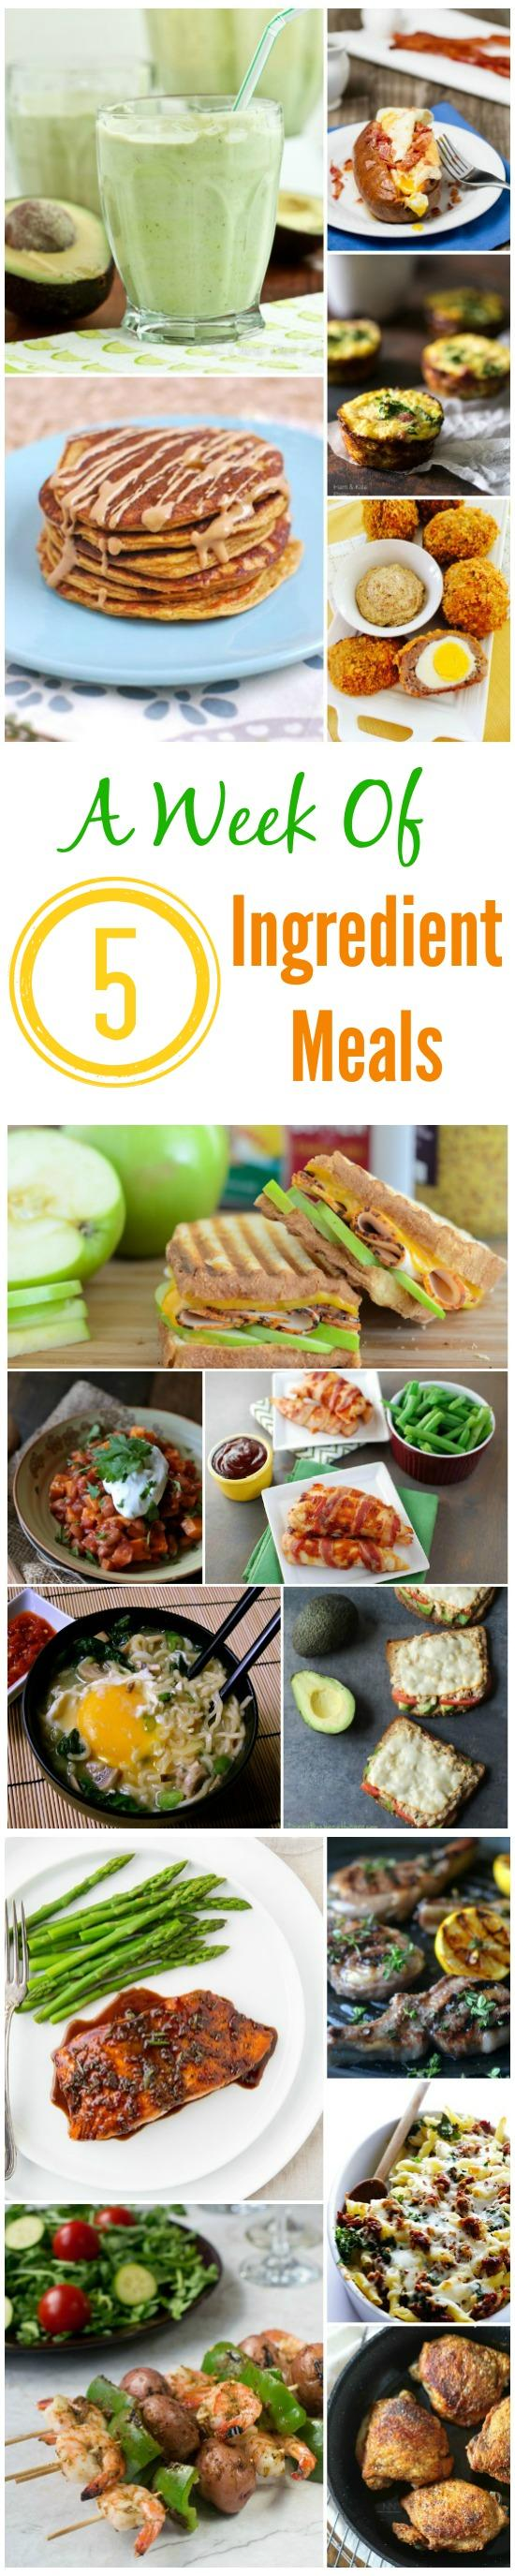 Need some quick, easy meal ideas? These recipes can all be made with 5 ingredients or less!